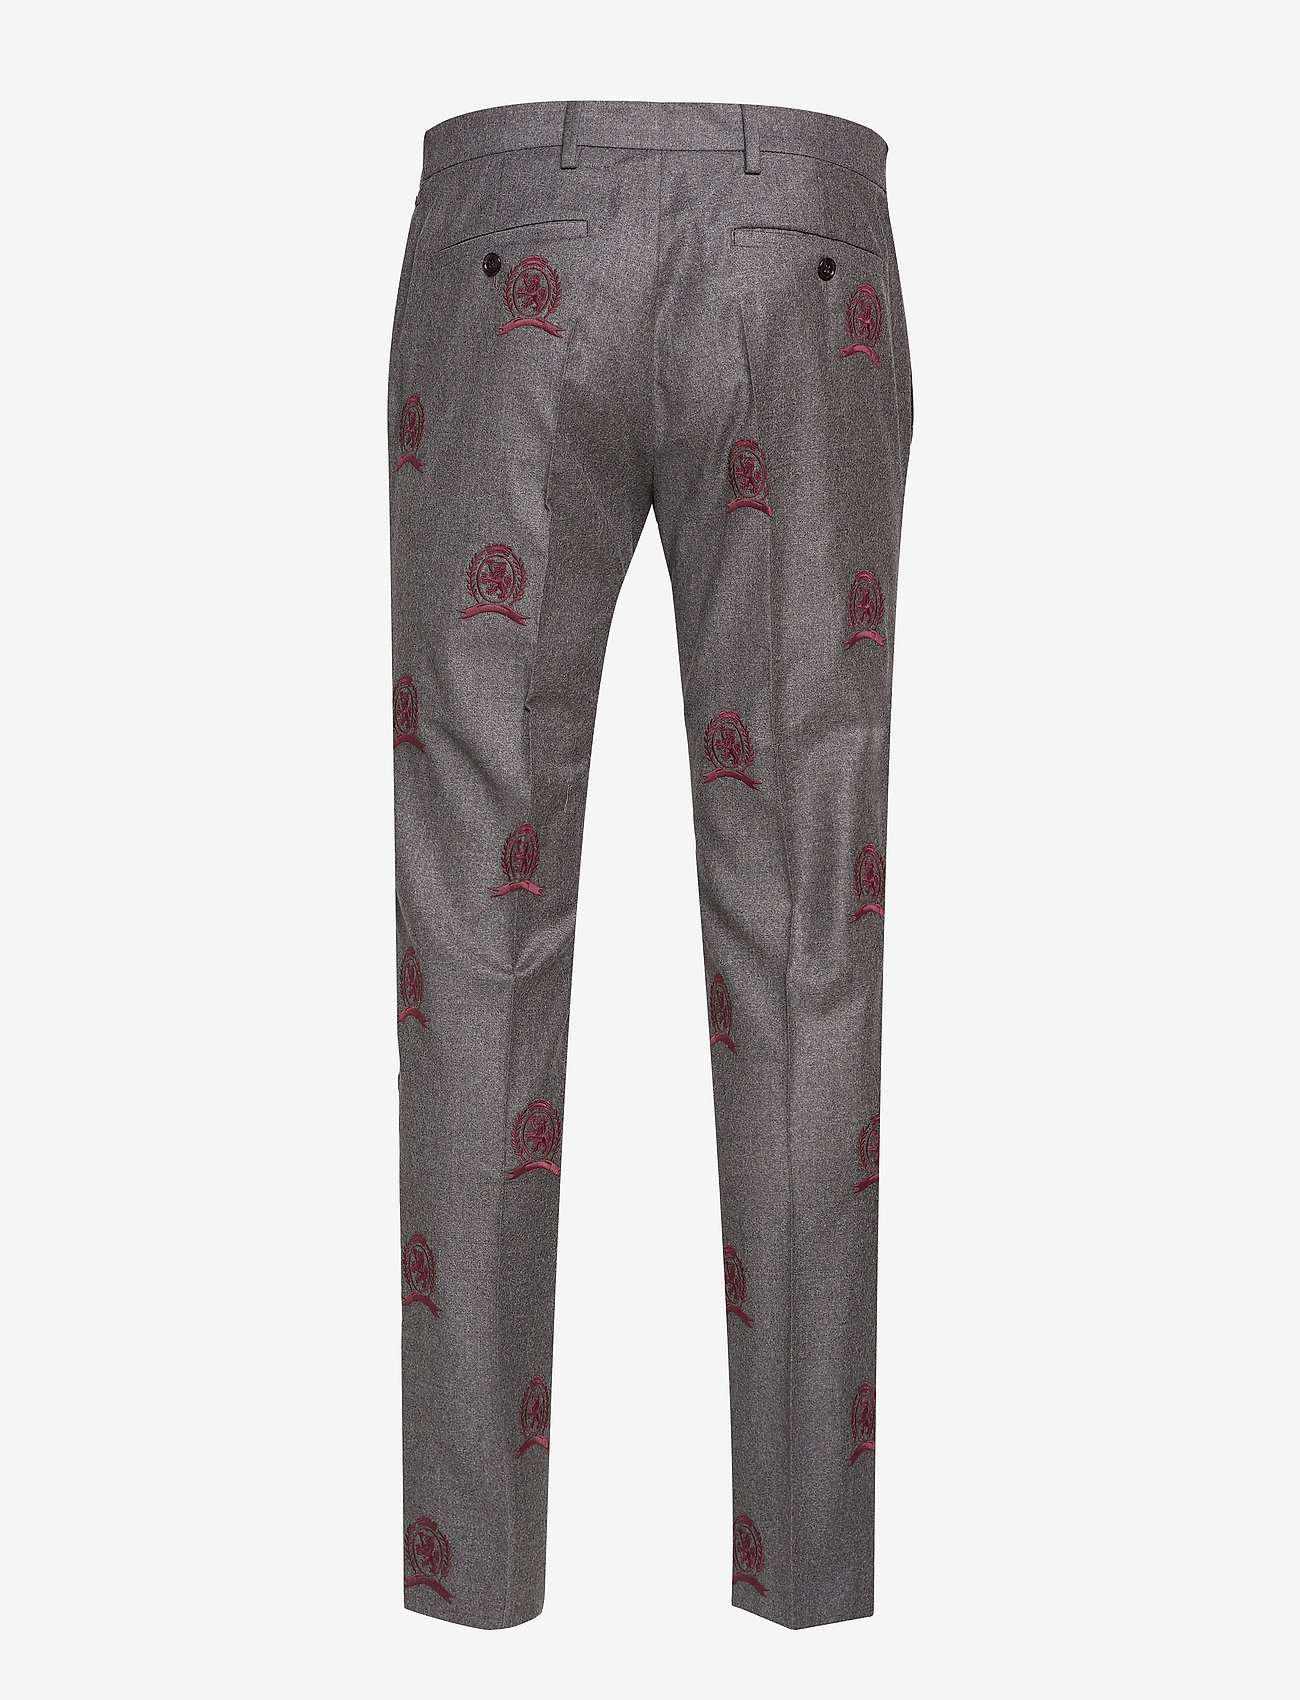 Hilfiger Collection Hcm Suit Sep Pants Embroidery - Byxor Charcoal Heather